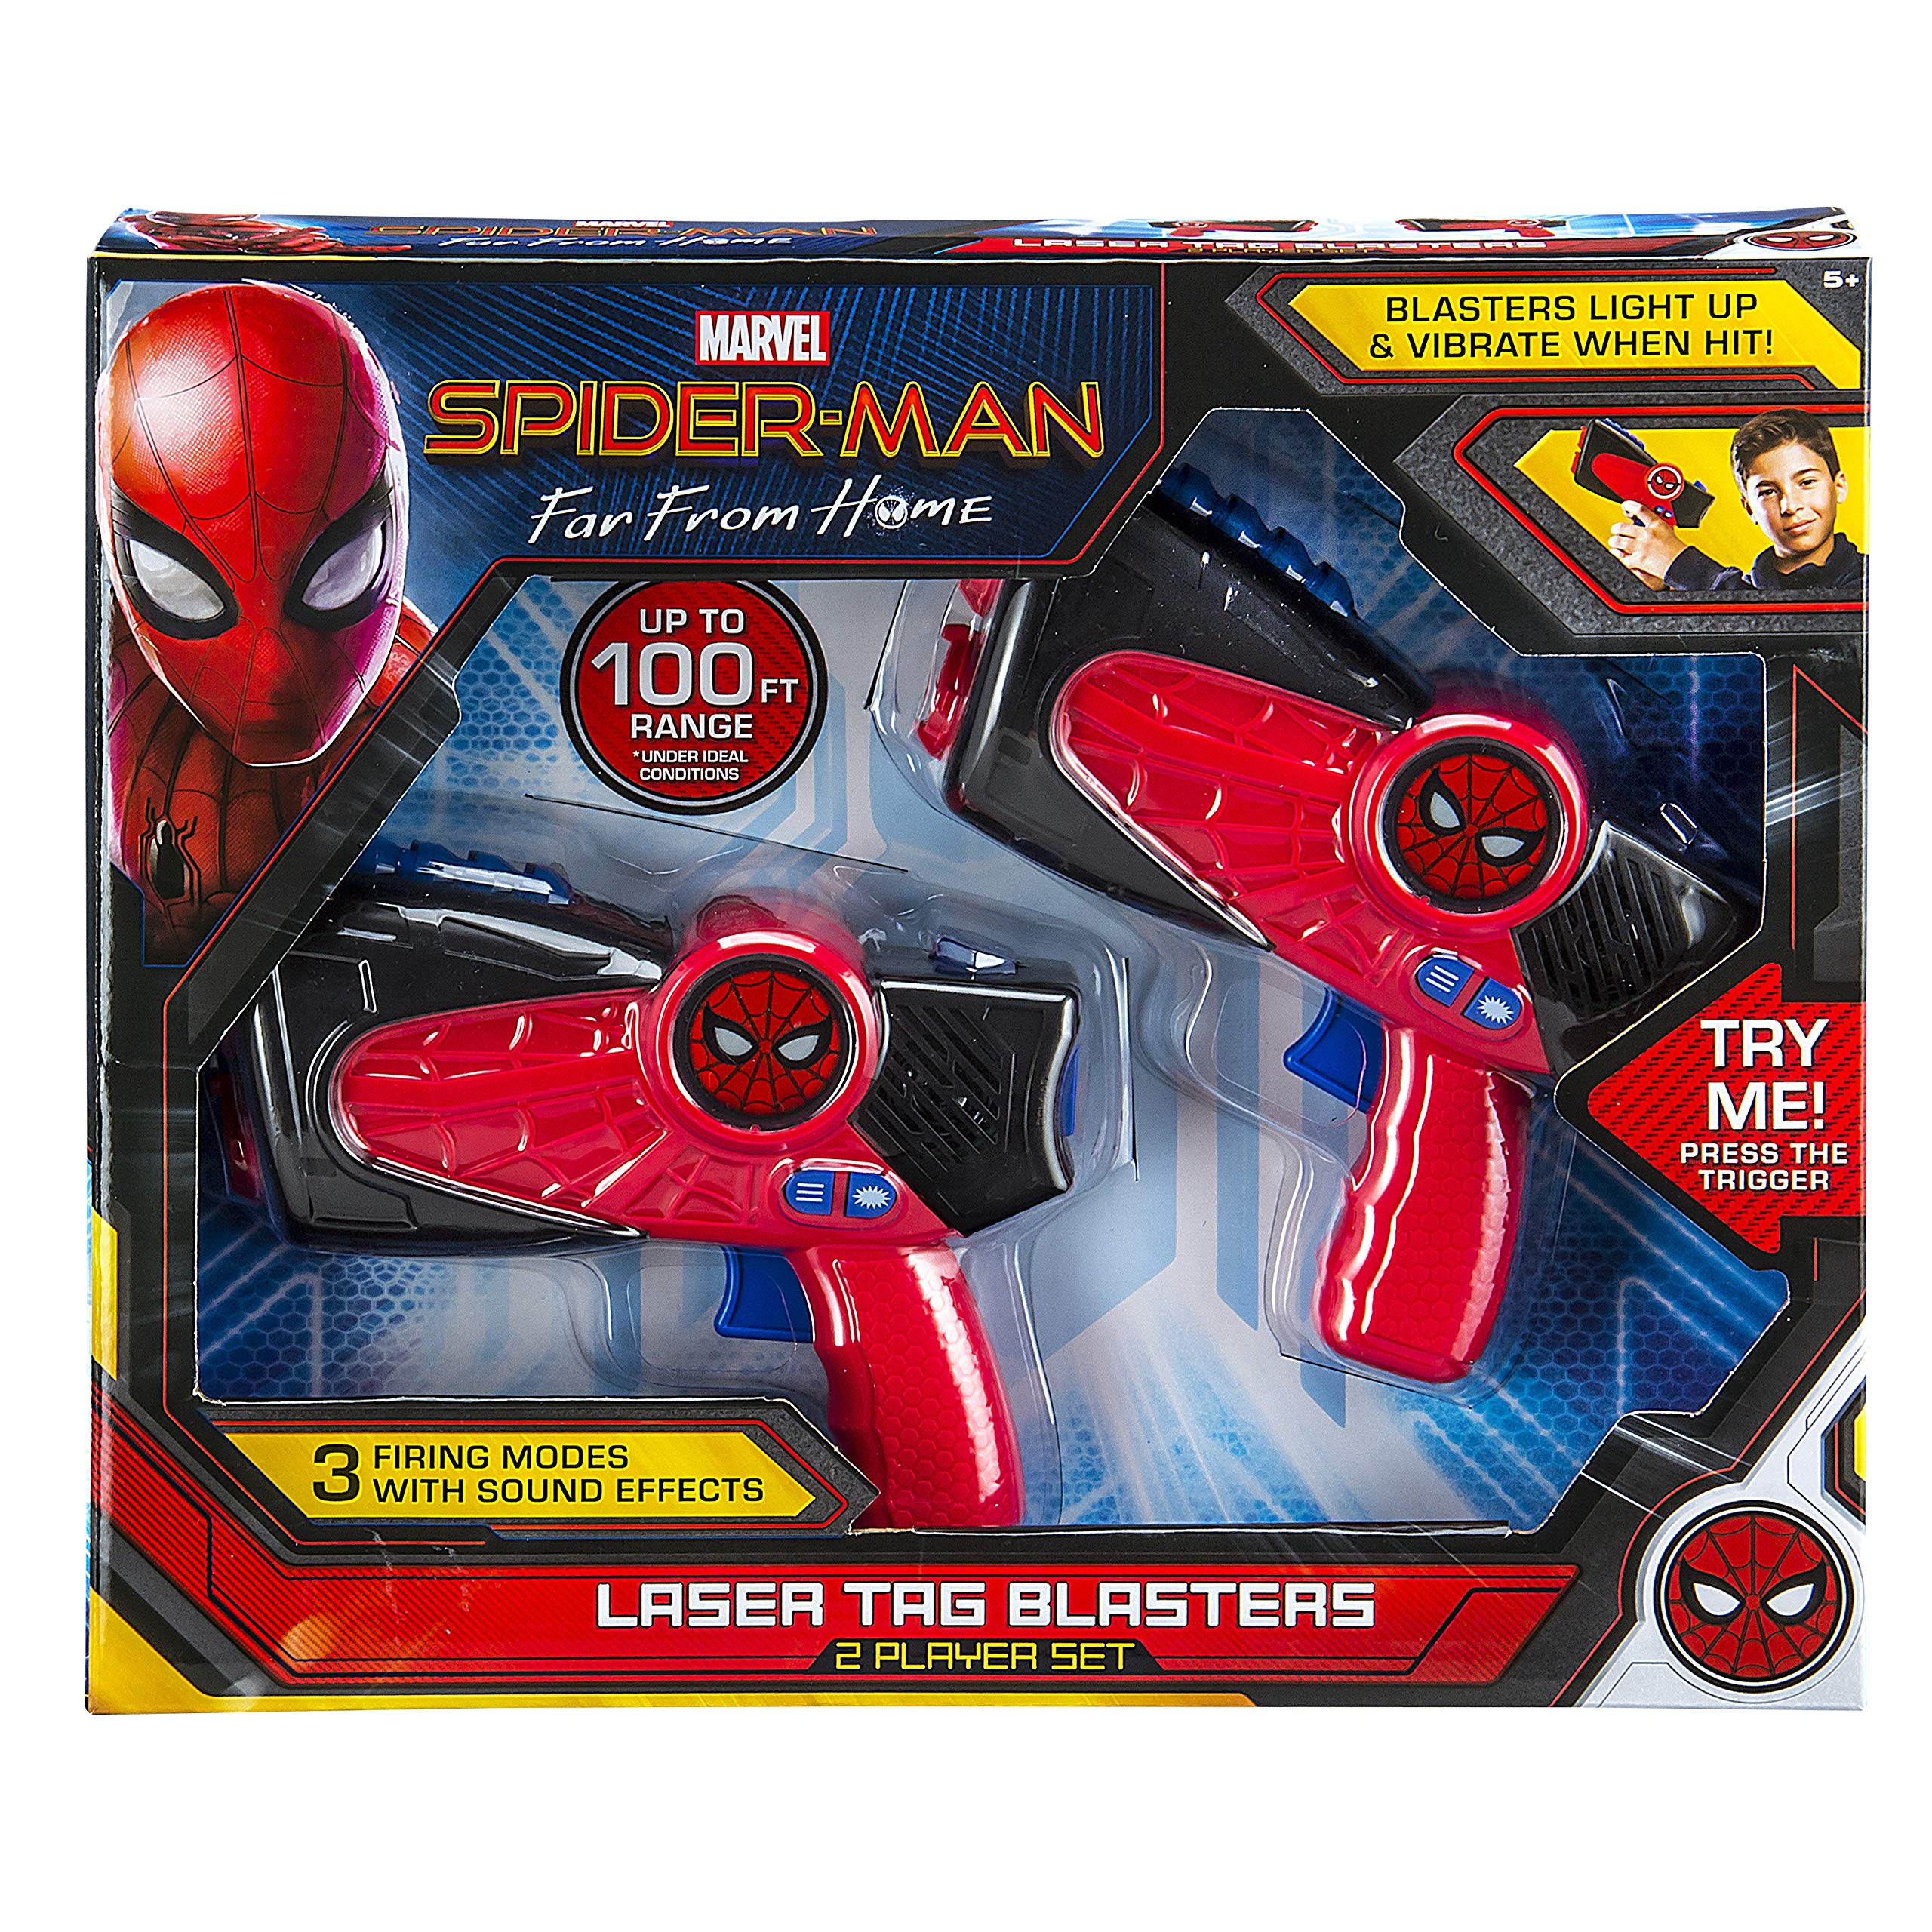 Spiderman Far from Home Laser-Tag for Kids Infared Lazer-Tag Blasters Lights Up & Vibrates When Hit by eKids (Image #5)